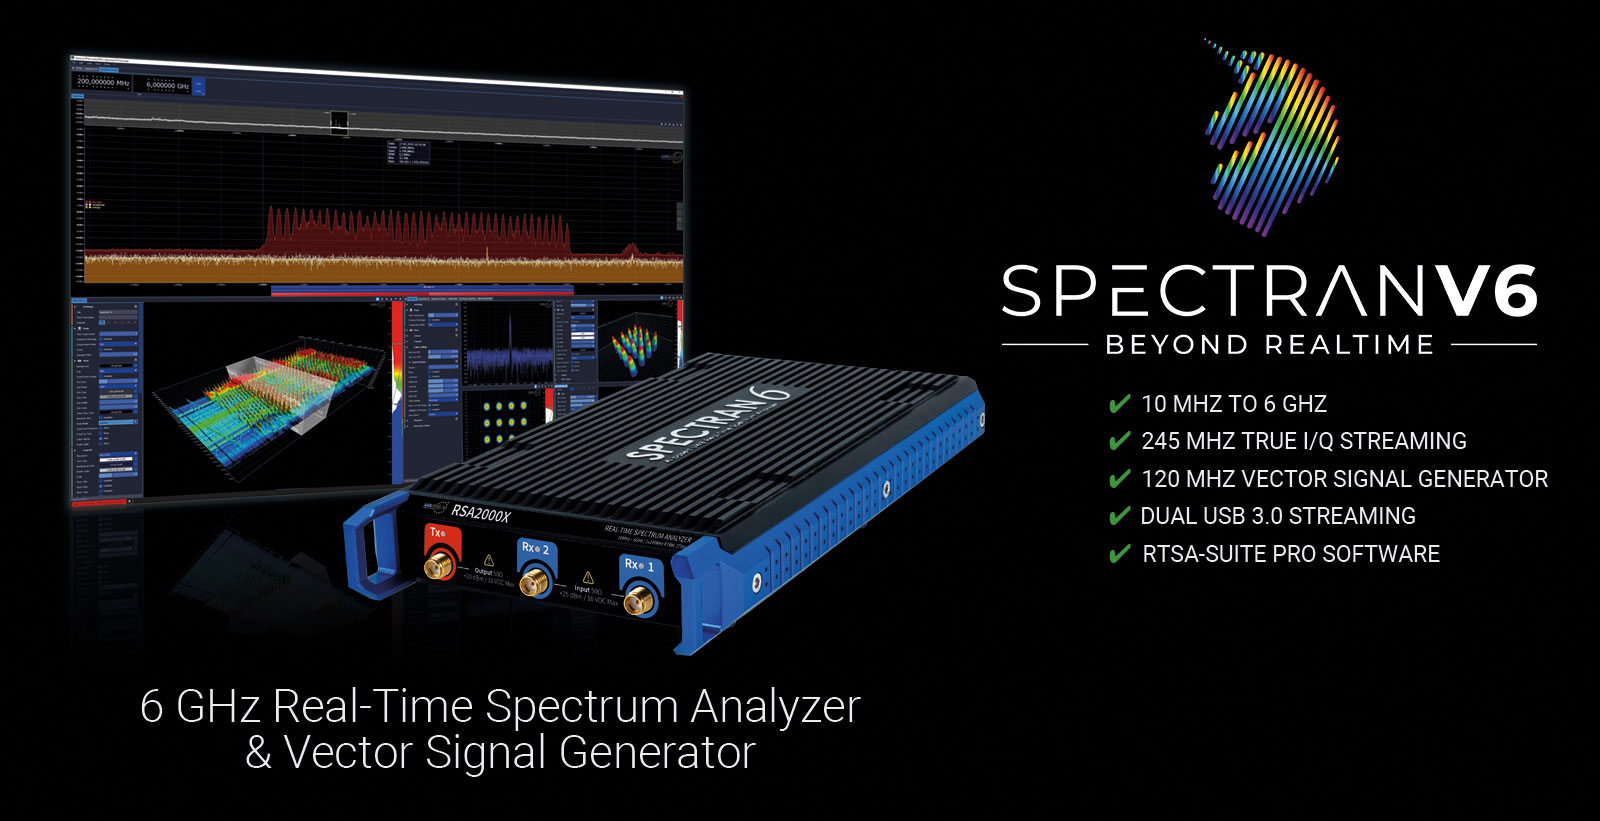 SPECTRAN V6 X - Spectrum Analyzer and Vector-Signal-Generator